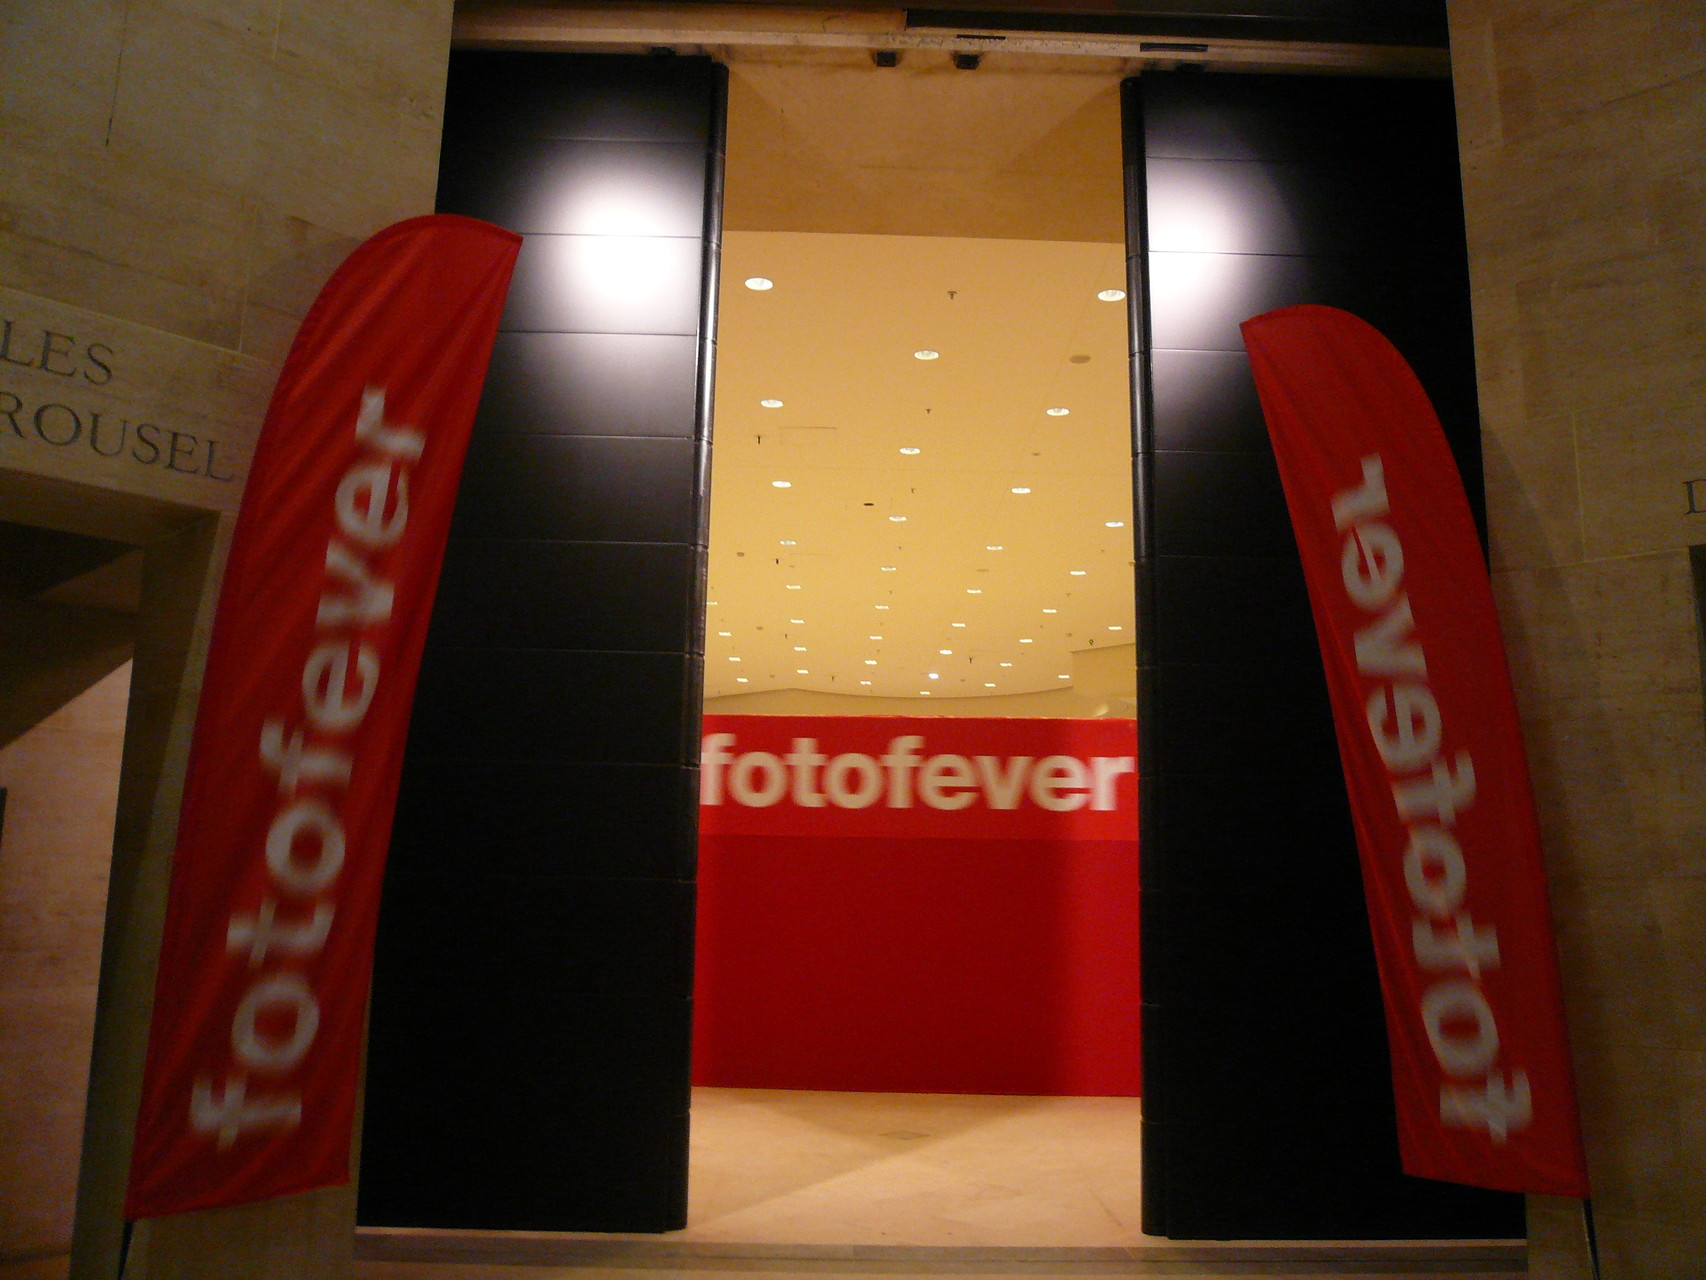 FOTOFEVER Art Fair (PARIS)